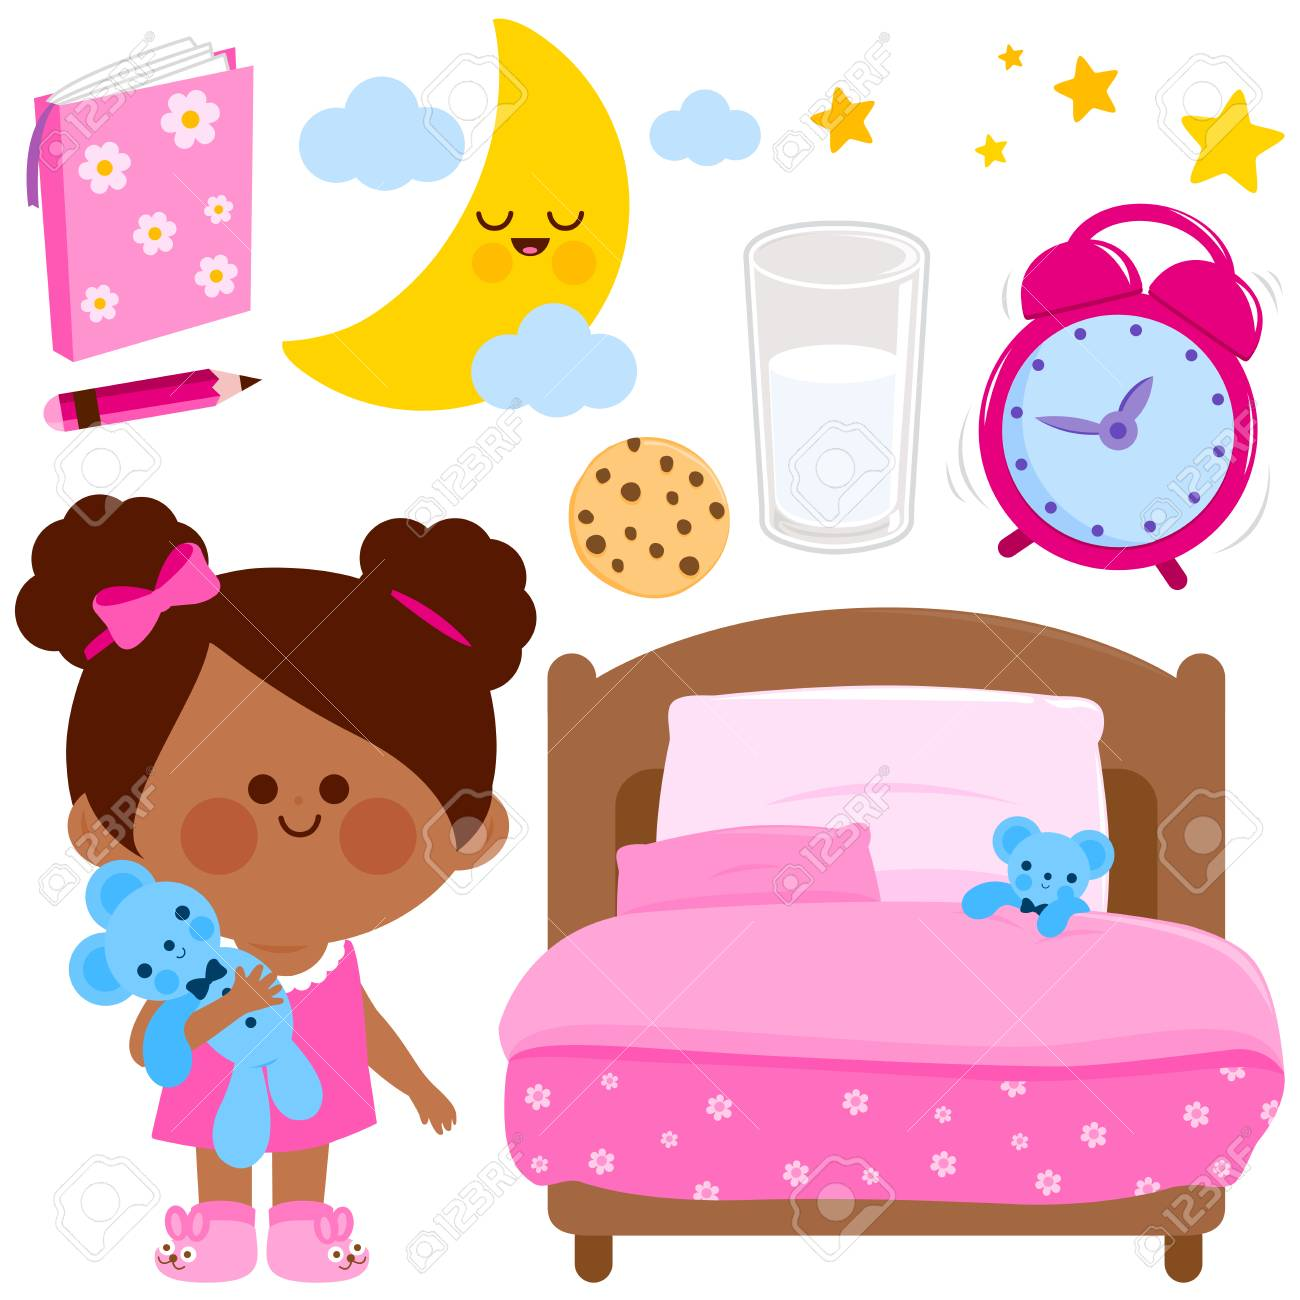 cute girl getting ready for bed at night. vector illustration